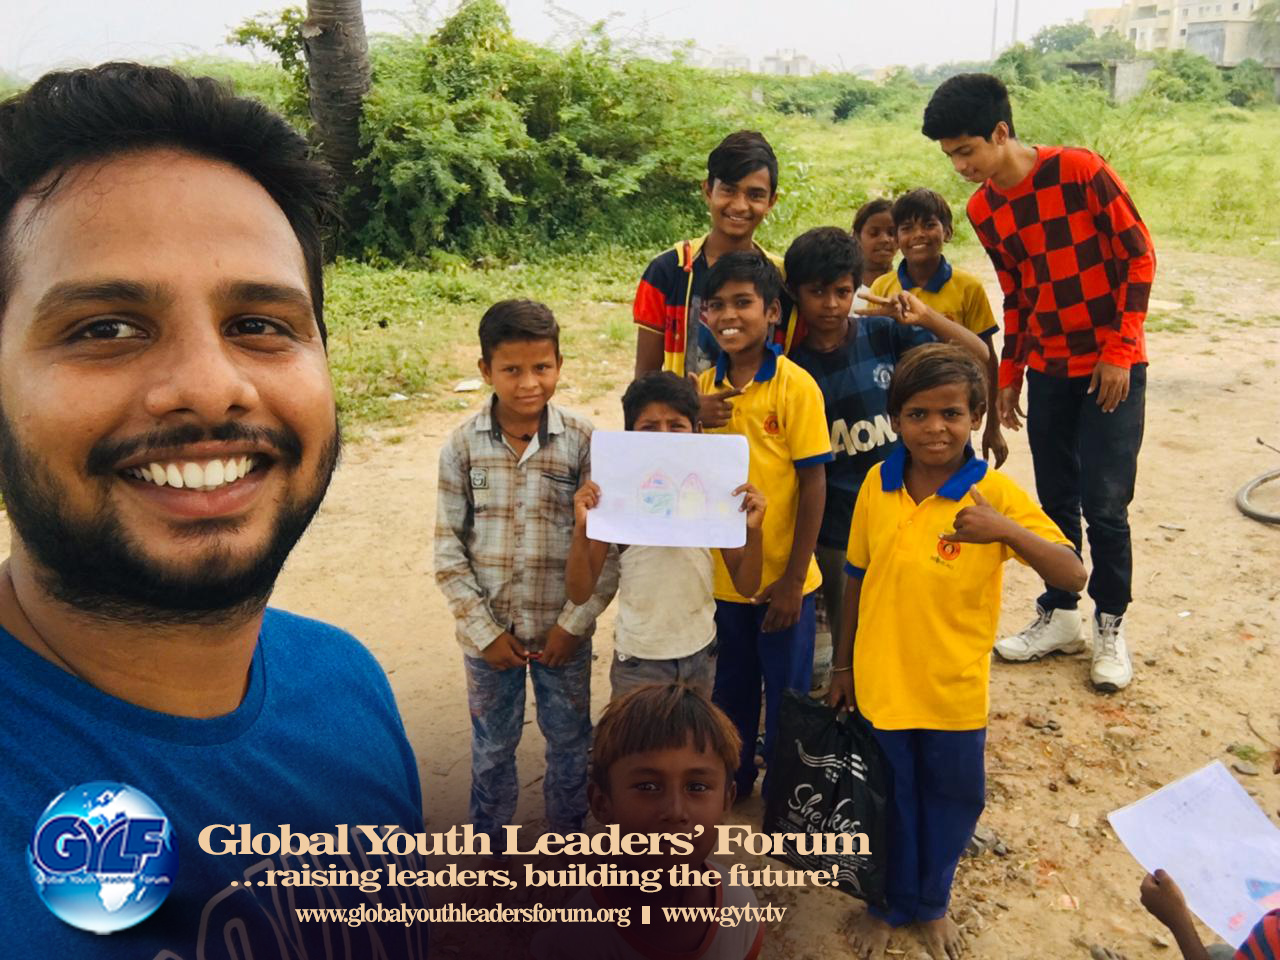 GYLF Ambassadors Reached Out to the Underprivileged in Gujarat, India